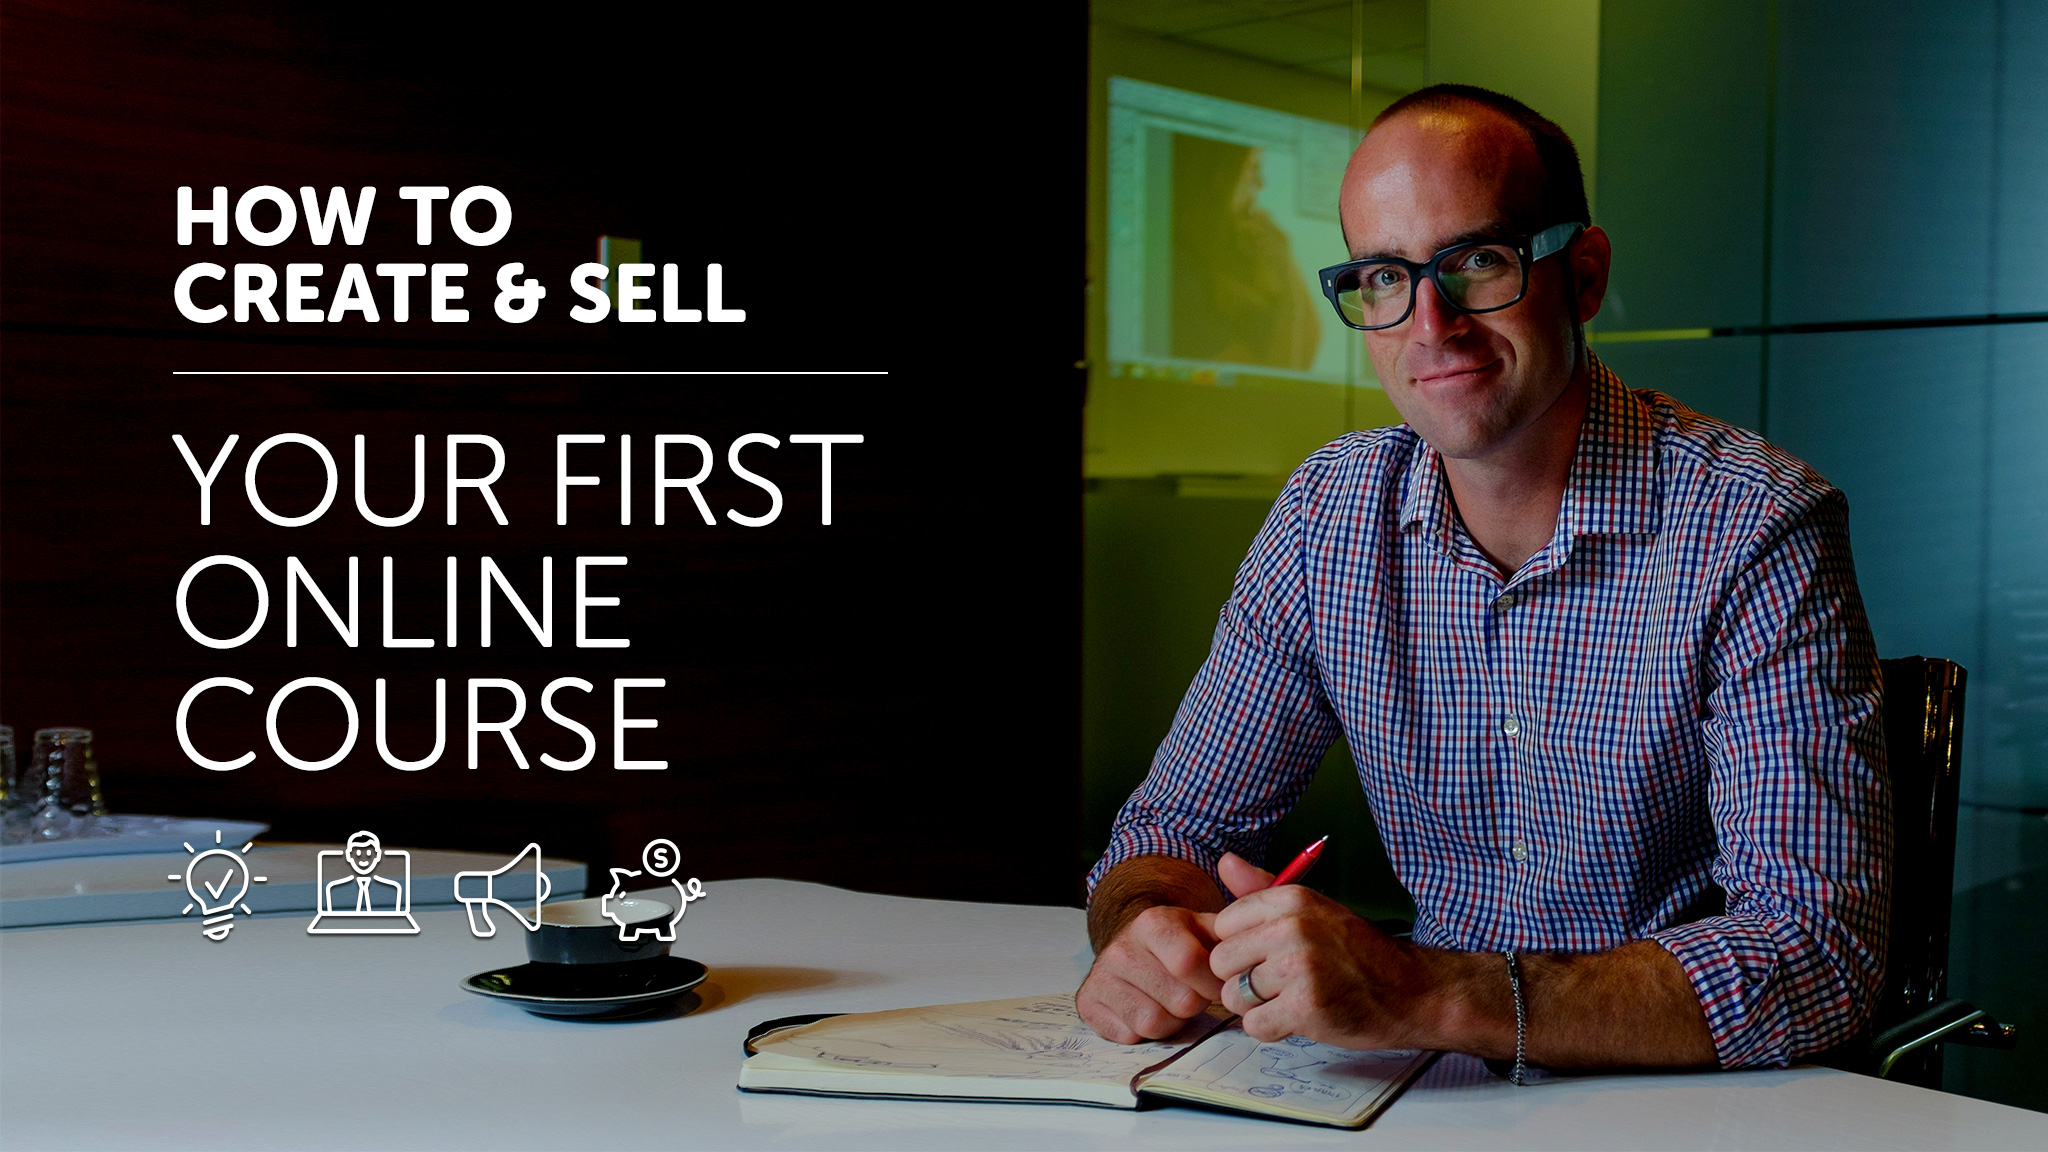 How to create, market & sell online courses